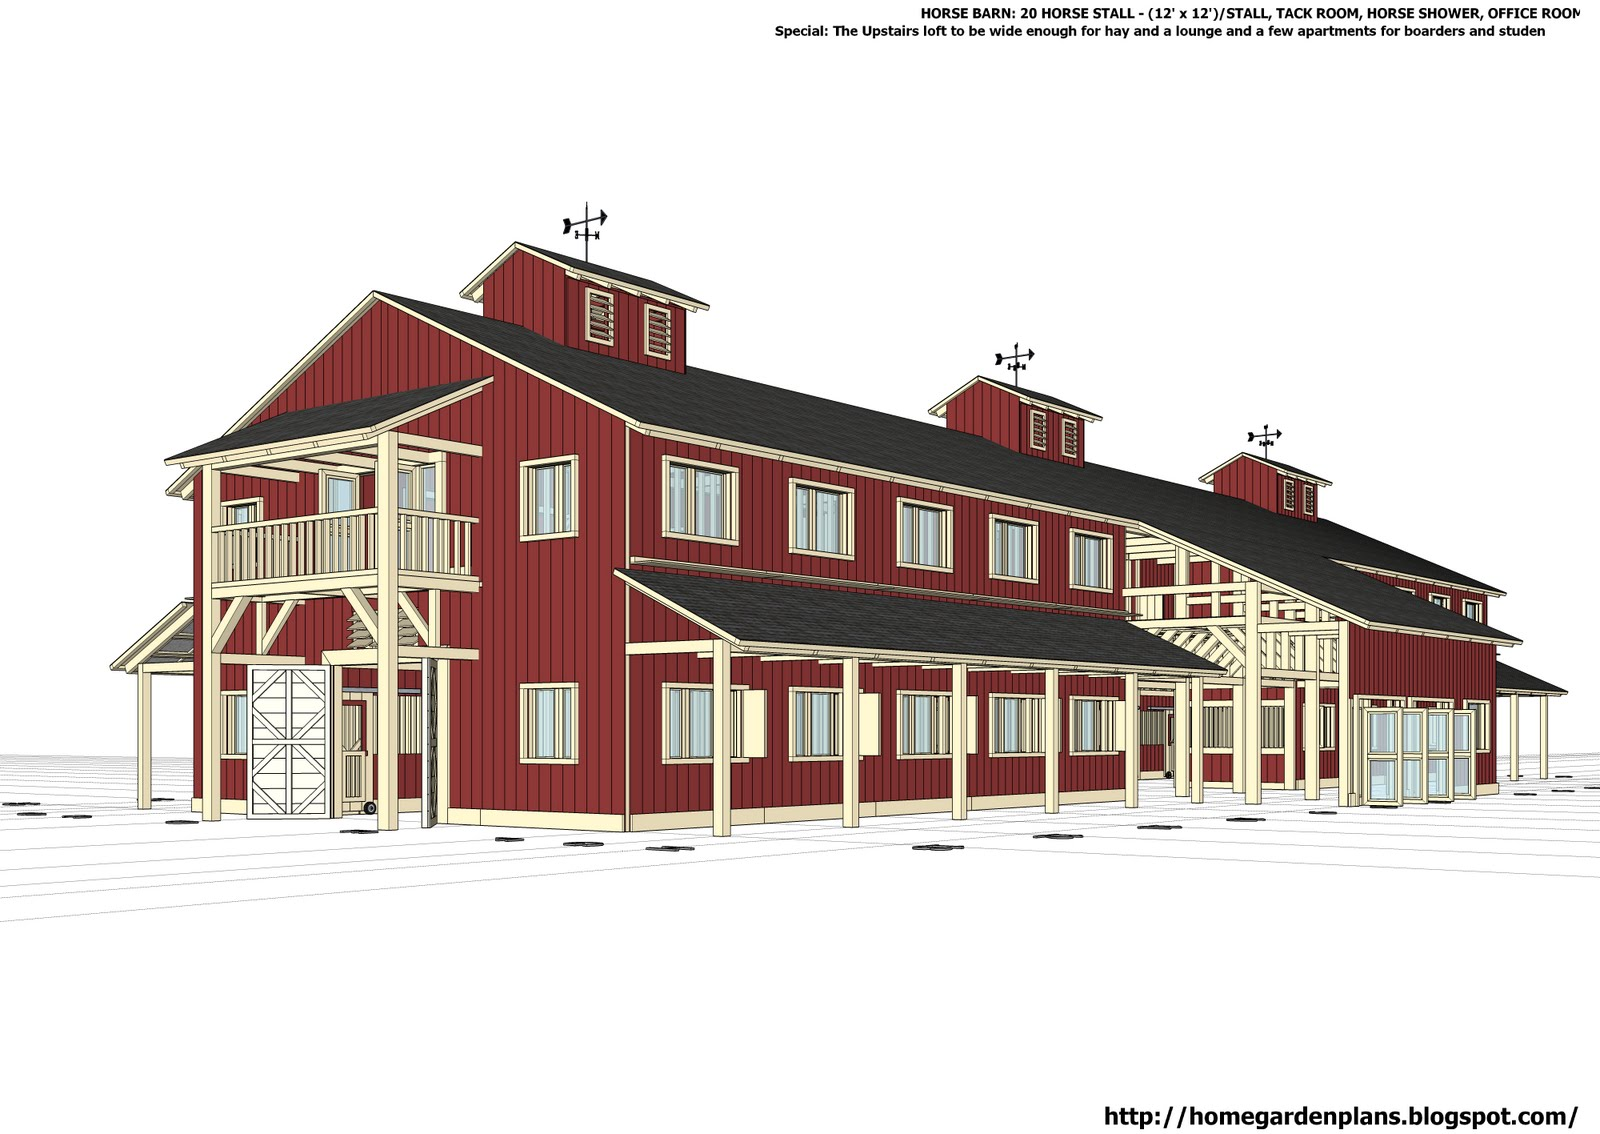 Barn Category Architect